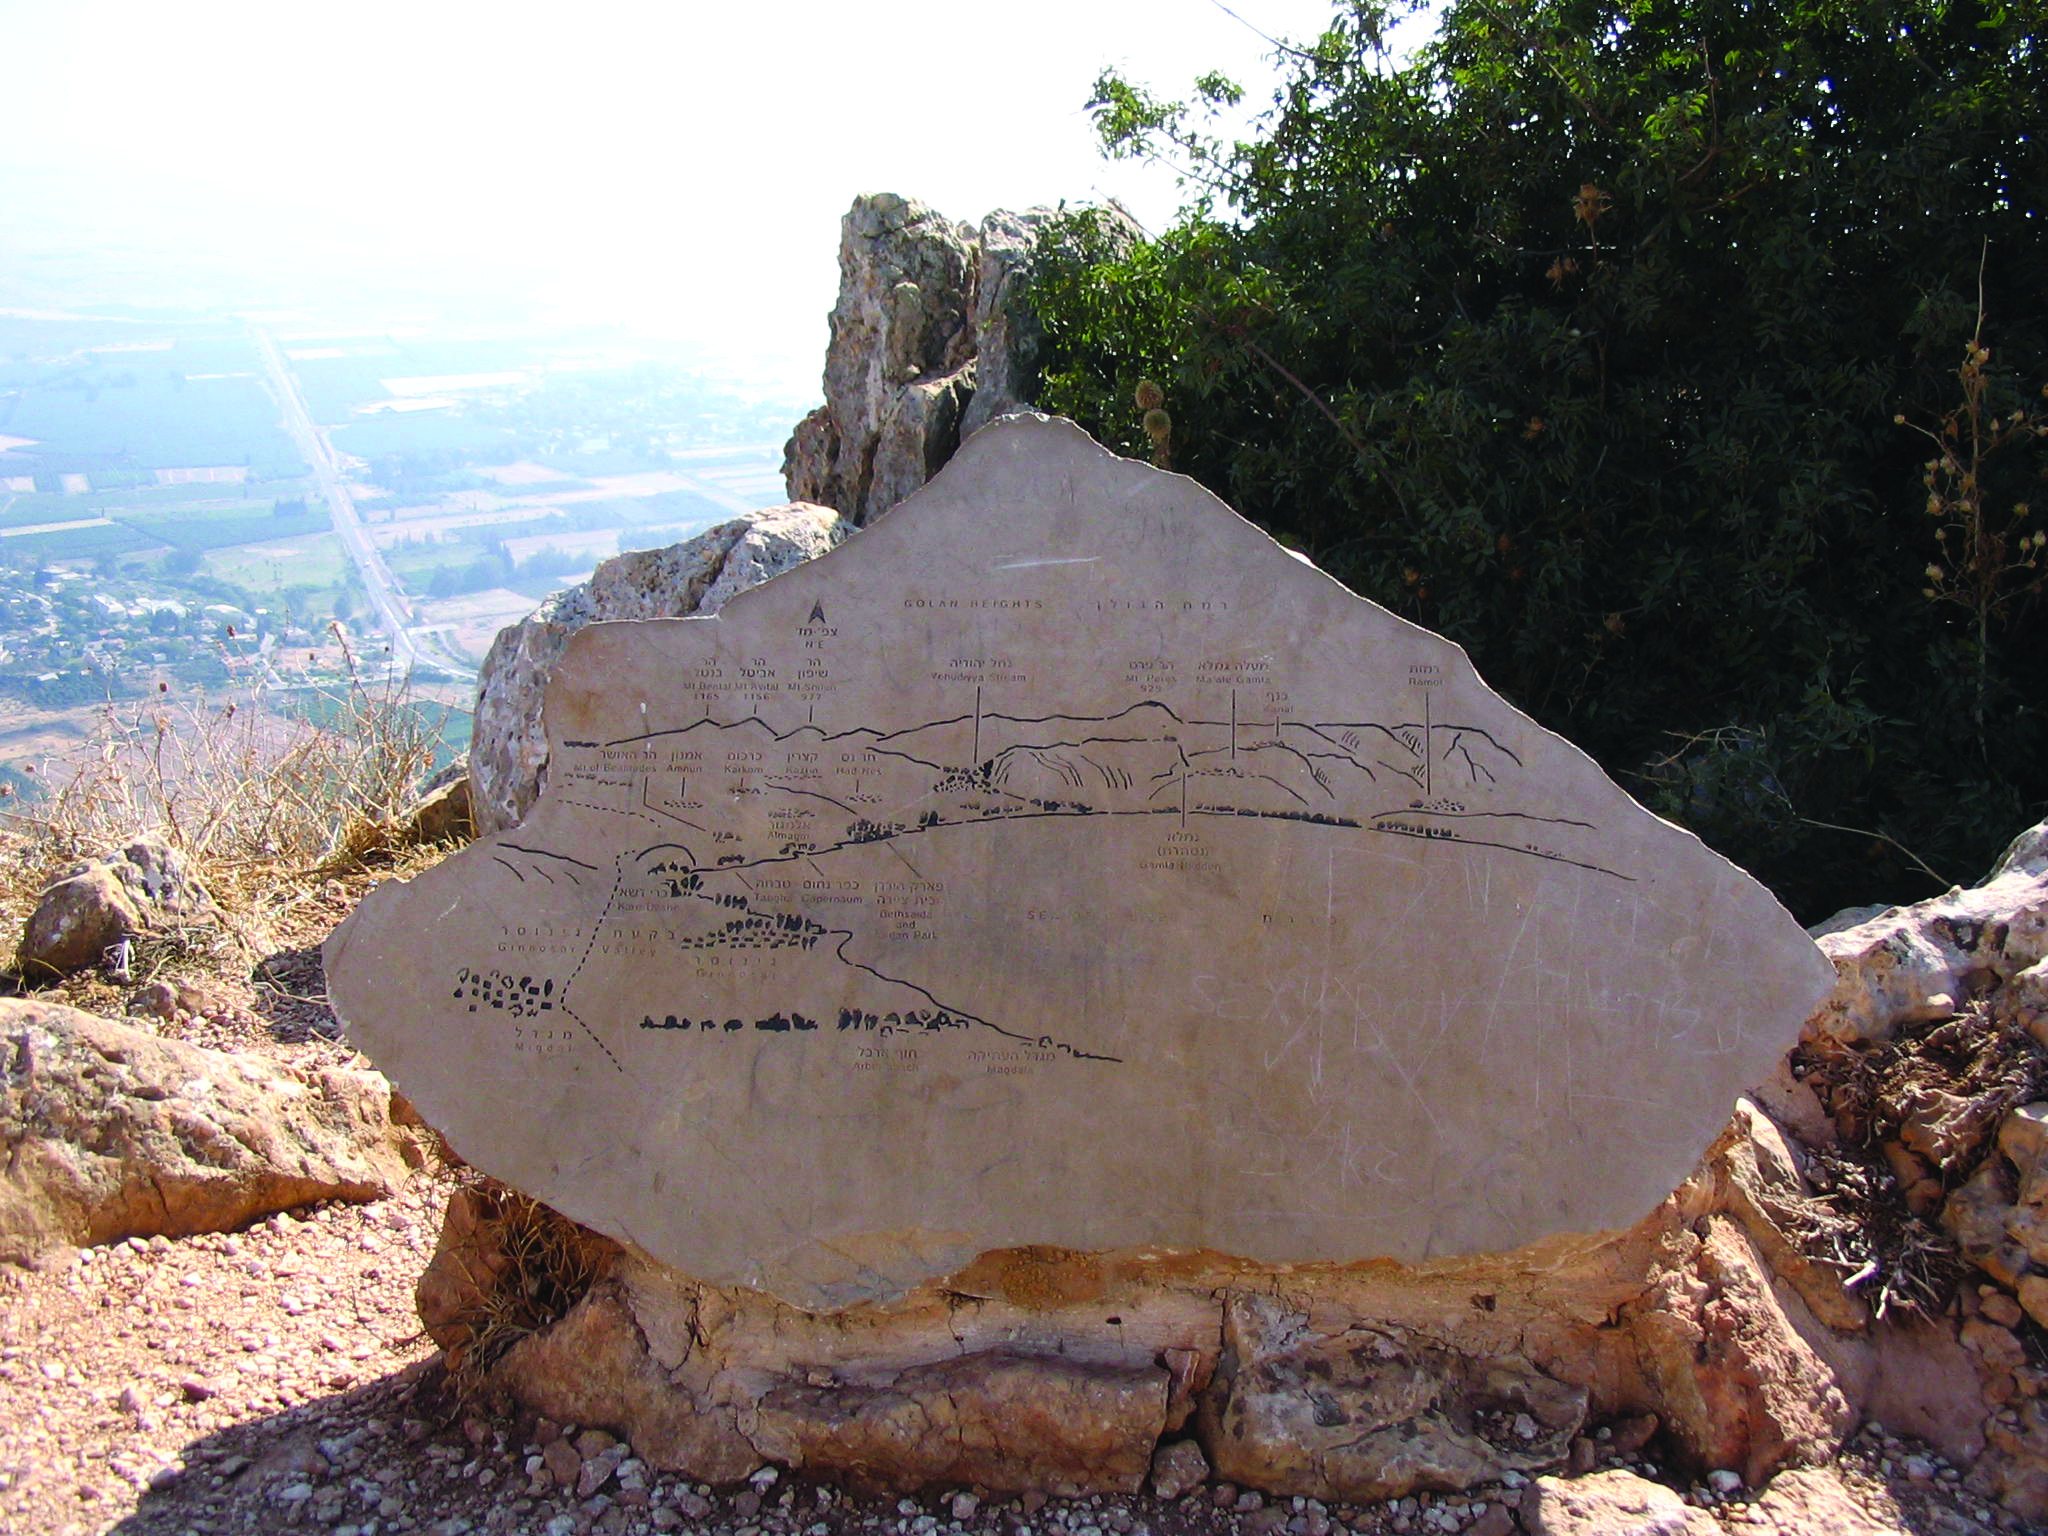 Map Of Overlook On Stone In Israel